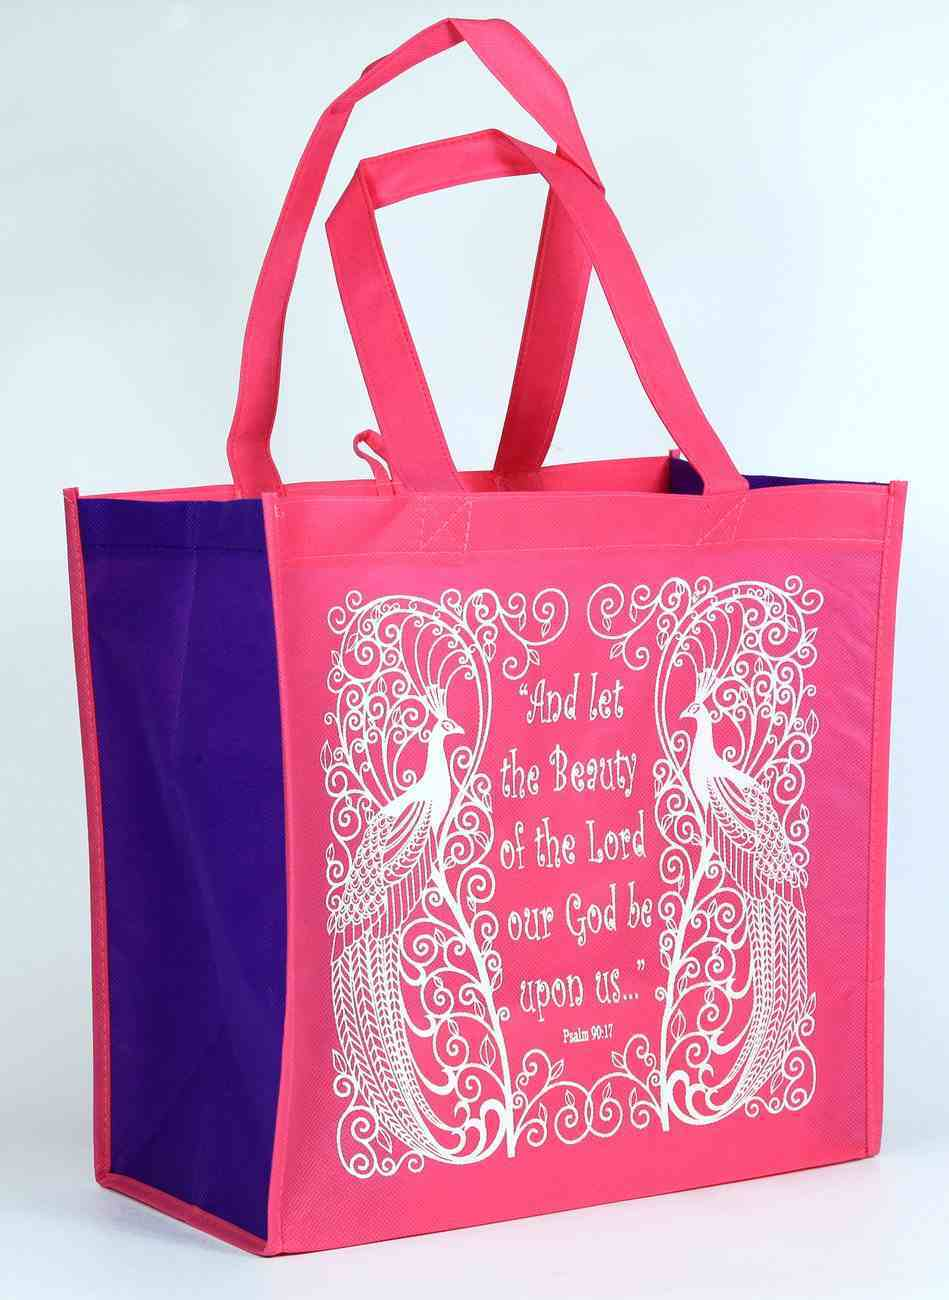 Tote Bag: And Let the Beauty of the Lord Our God Be Upon Us, Pink/White Soft Goods